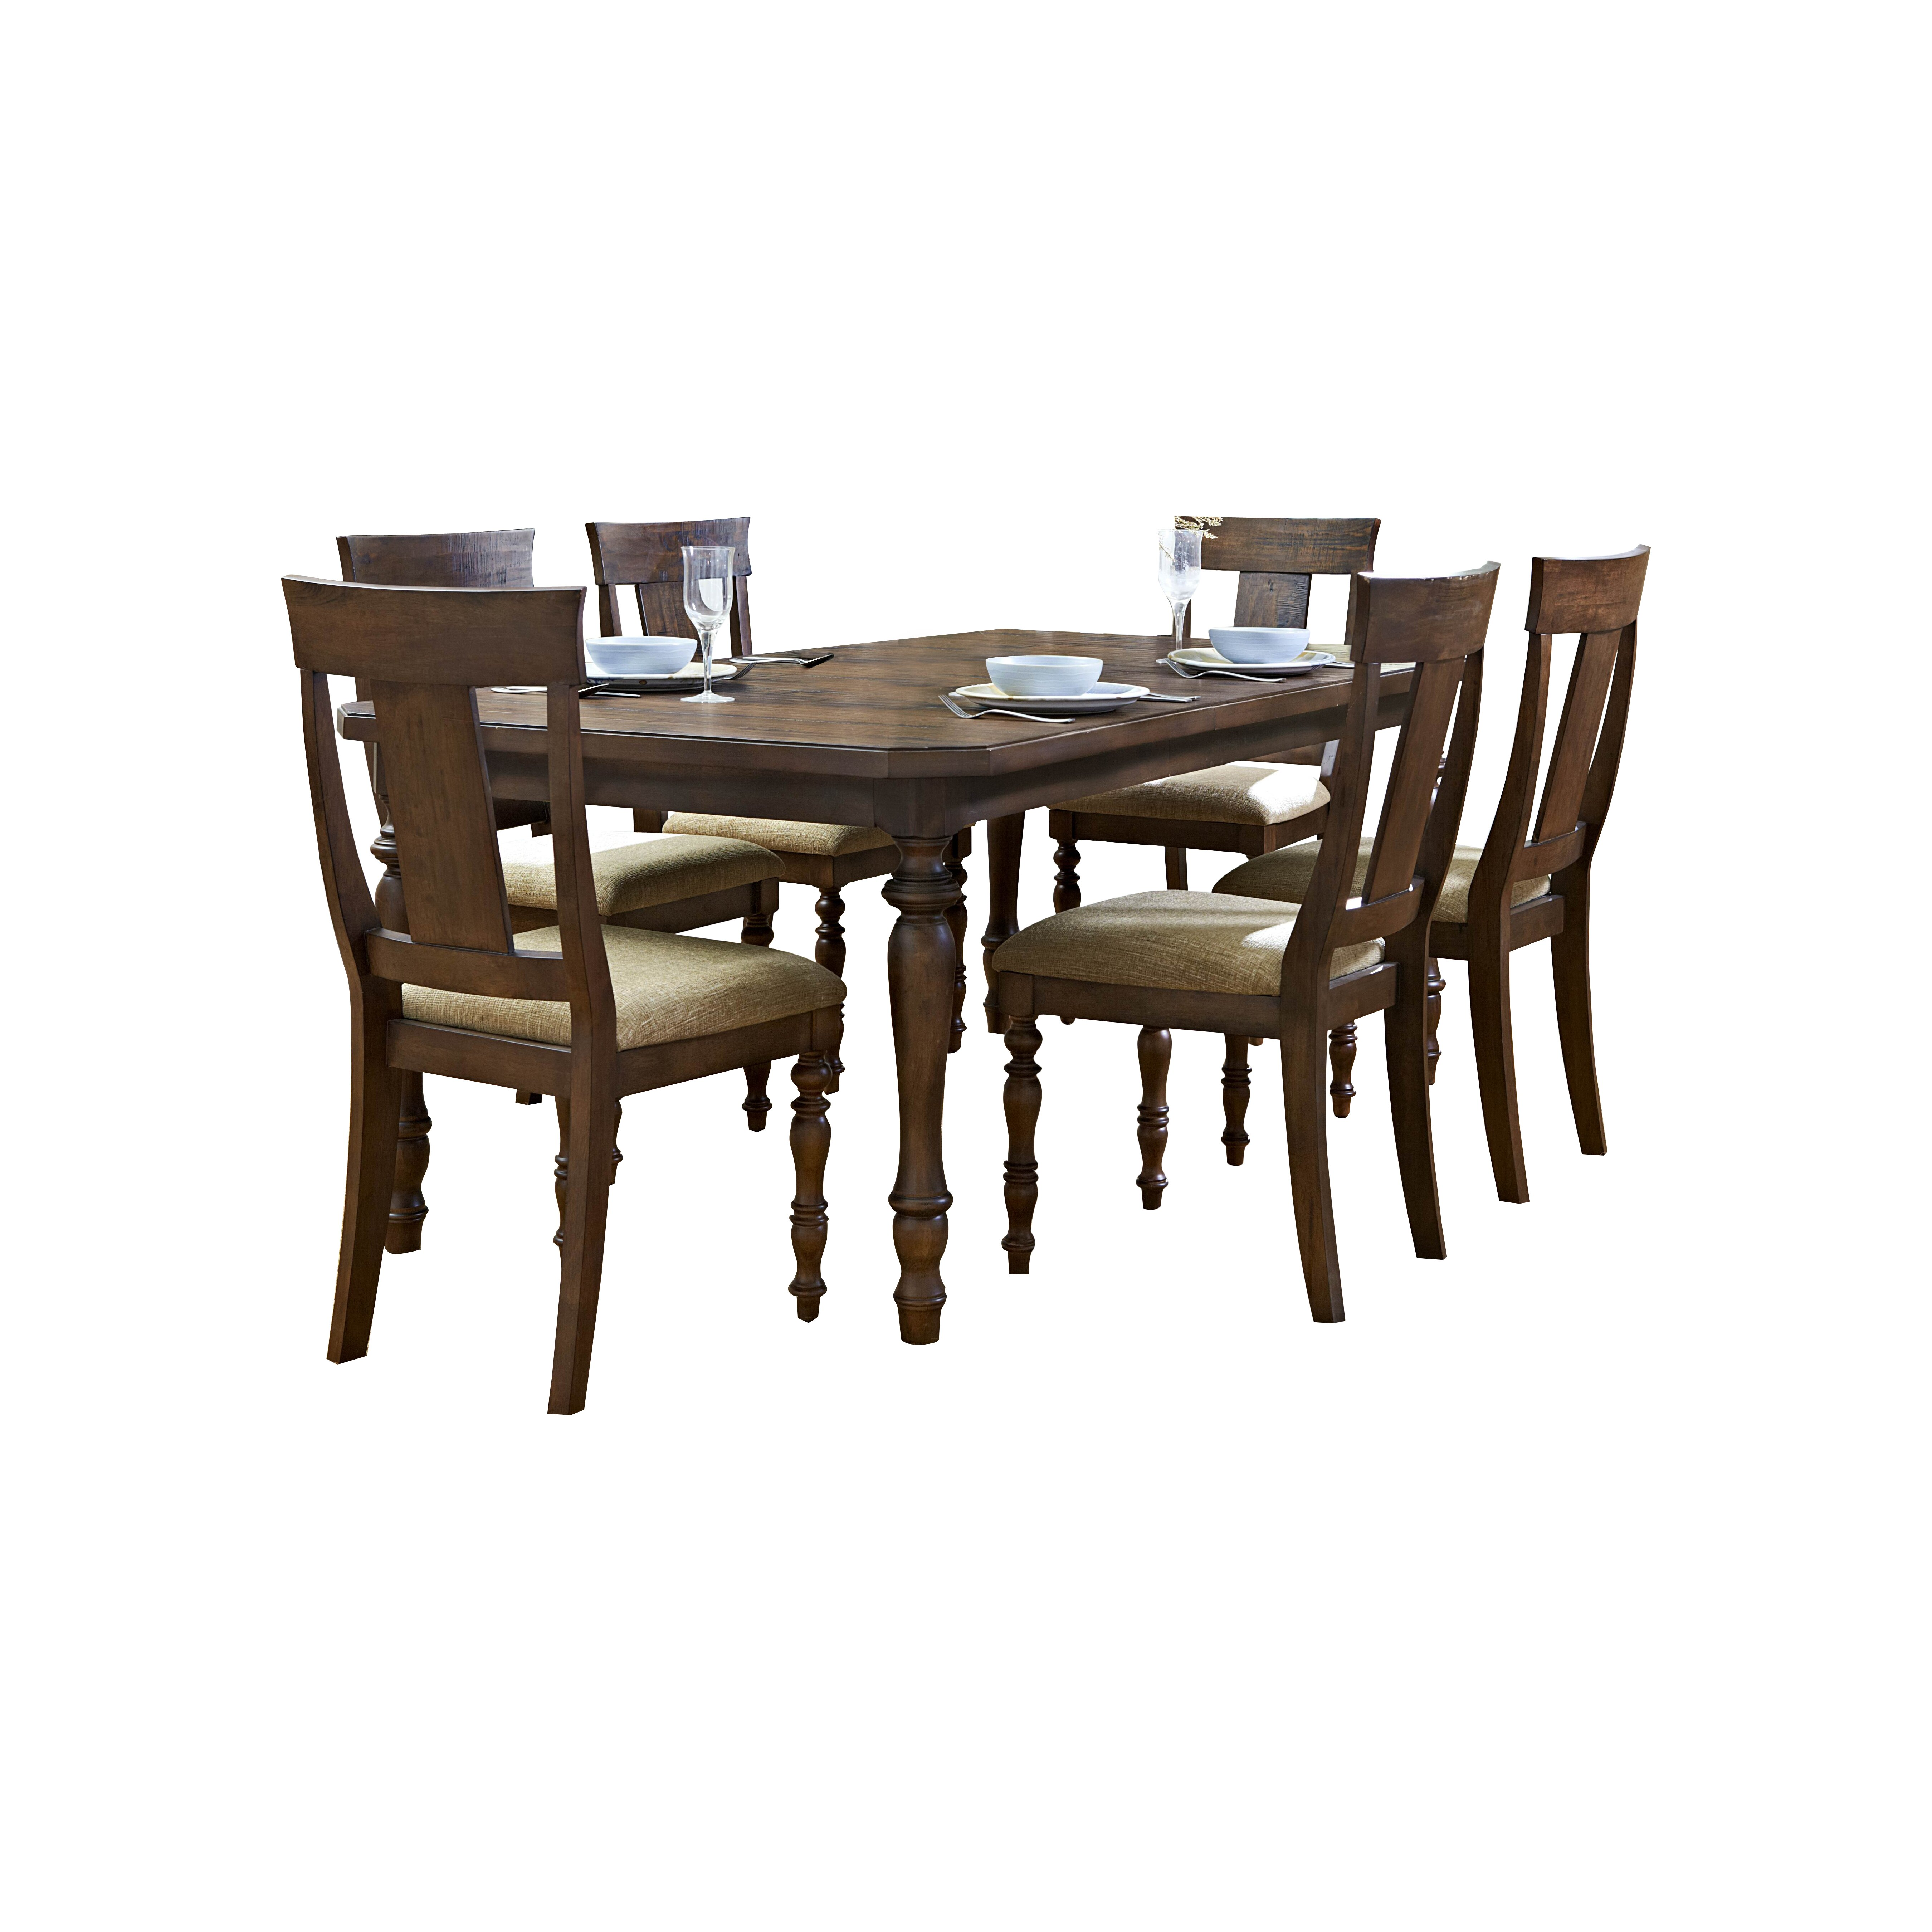 Dining Furniture 7 Piece Kitchen & Dining Room Sets Darby Home Co. Full resolution  portrait, nominally Width 5400 Height 5400 pixels, portrait with #3A291A.